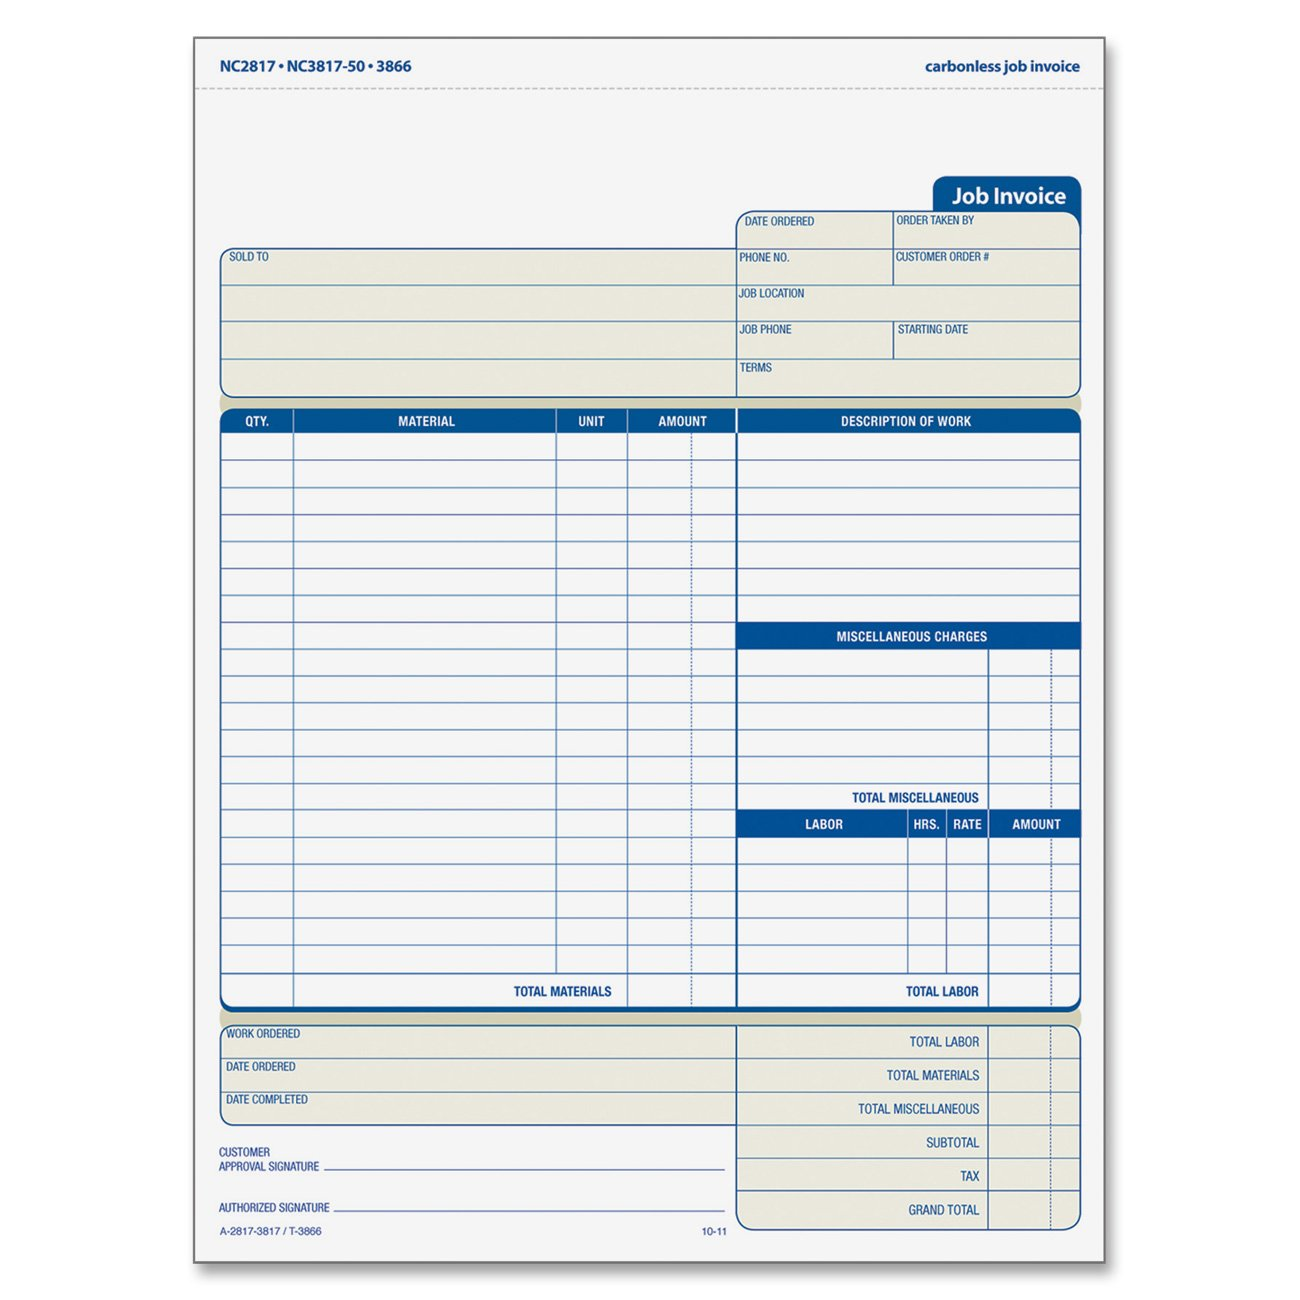 Job Invoice Forms Pertaminico - Free invoice forms templates for service business